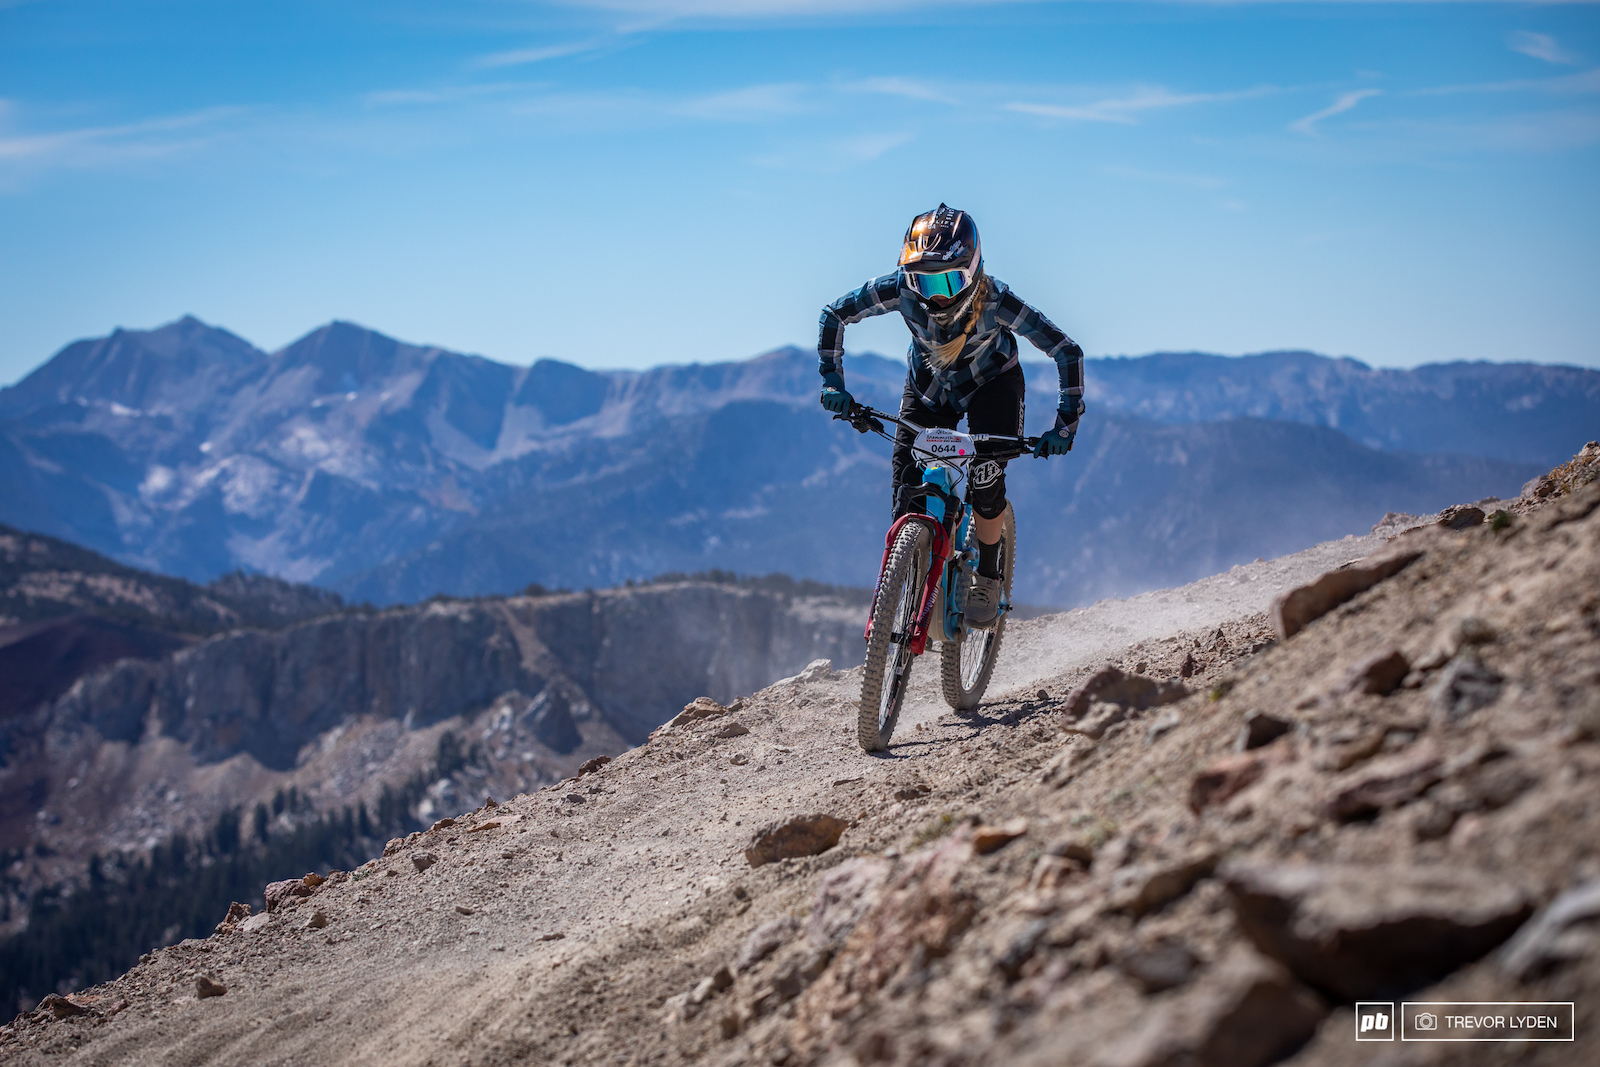 Rachel Strait putting the hammer down to a second place finish in Pro Women